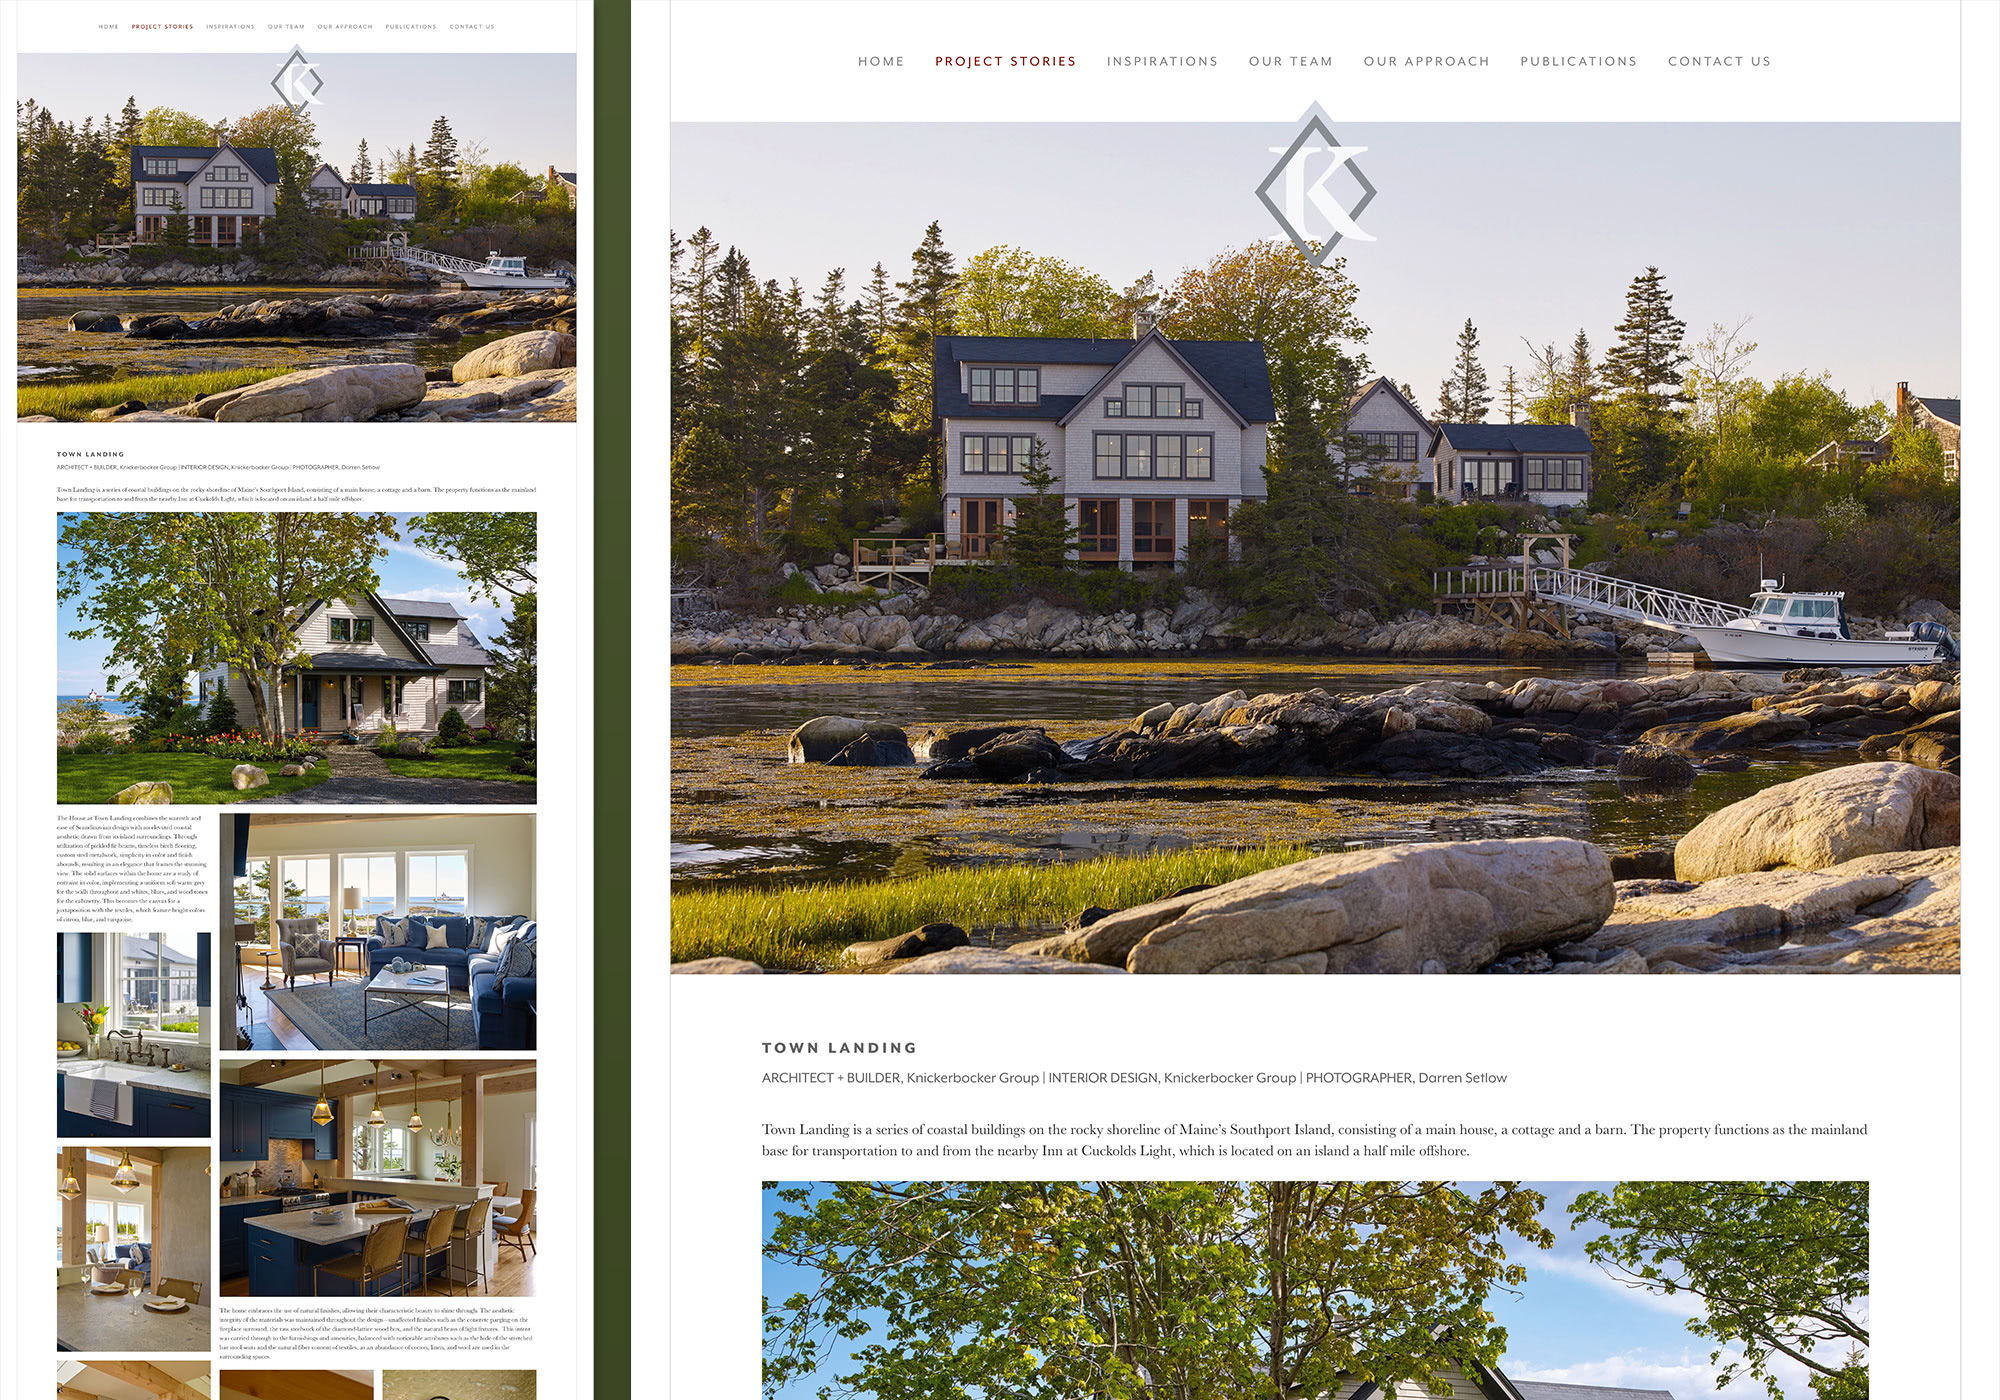 A screenshot from the Knickerbocker Group website showing an example of a project story called Town Landing. Designed and developed by Maine website design company, SlickFish Studios